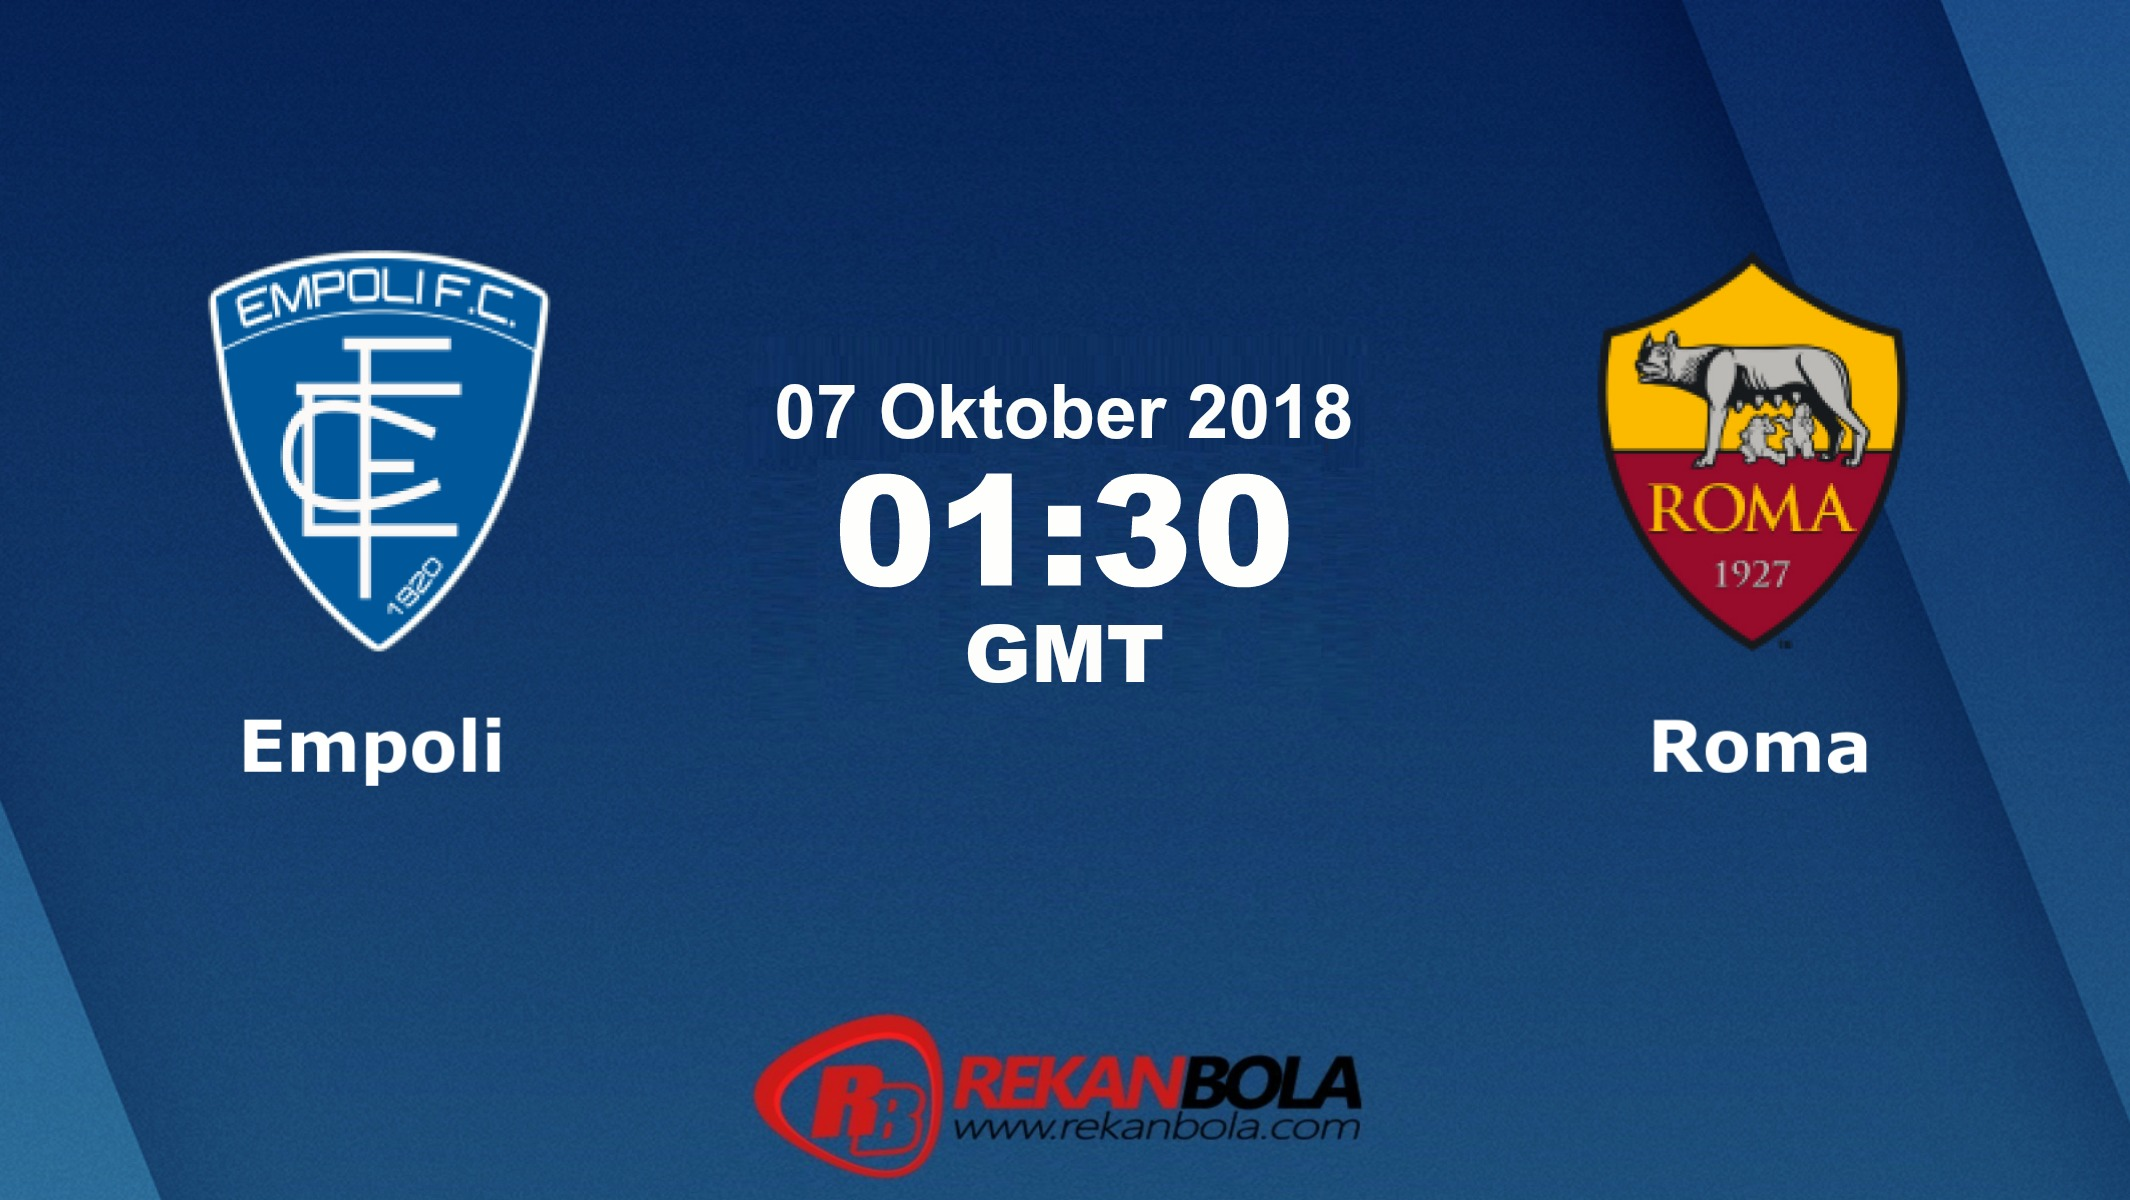 Nonton Siaran Live Streaming Empoli Vs AS Roma 07 Oktober 2018